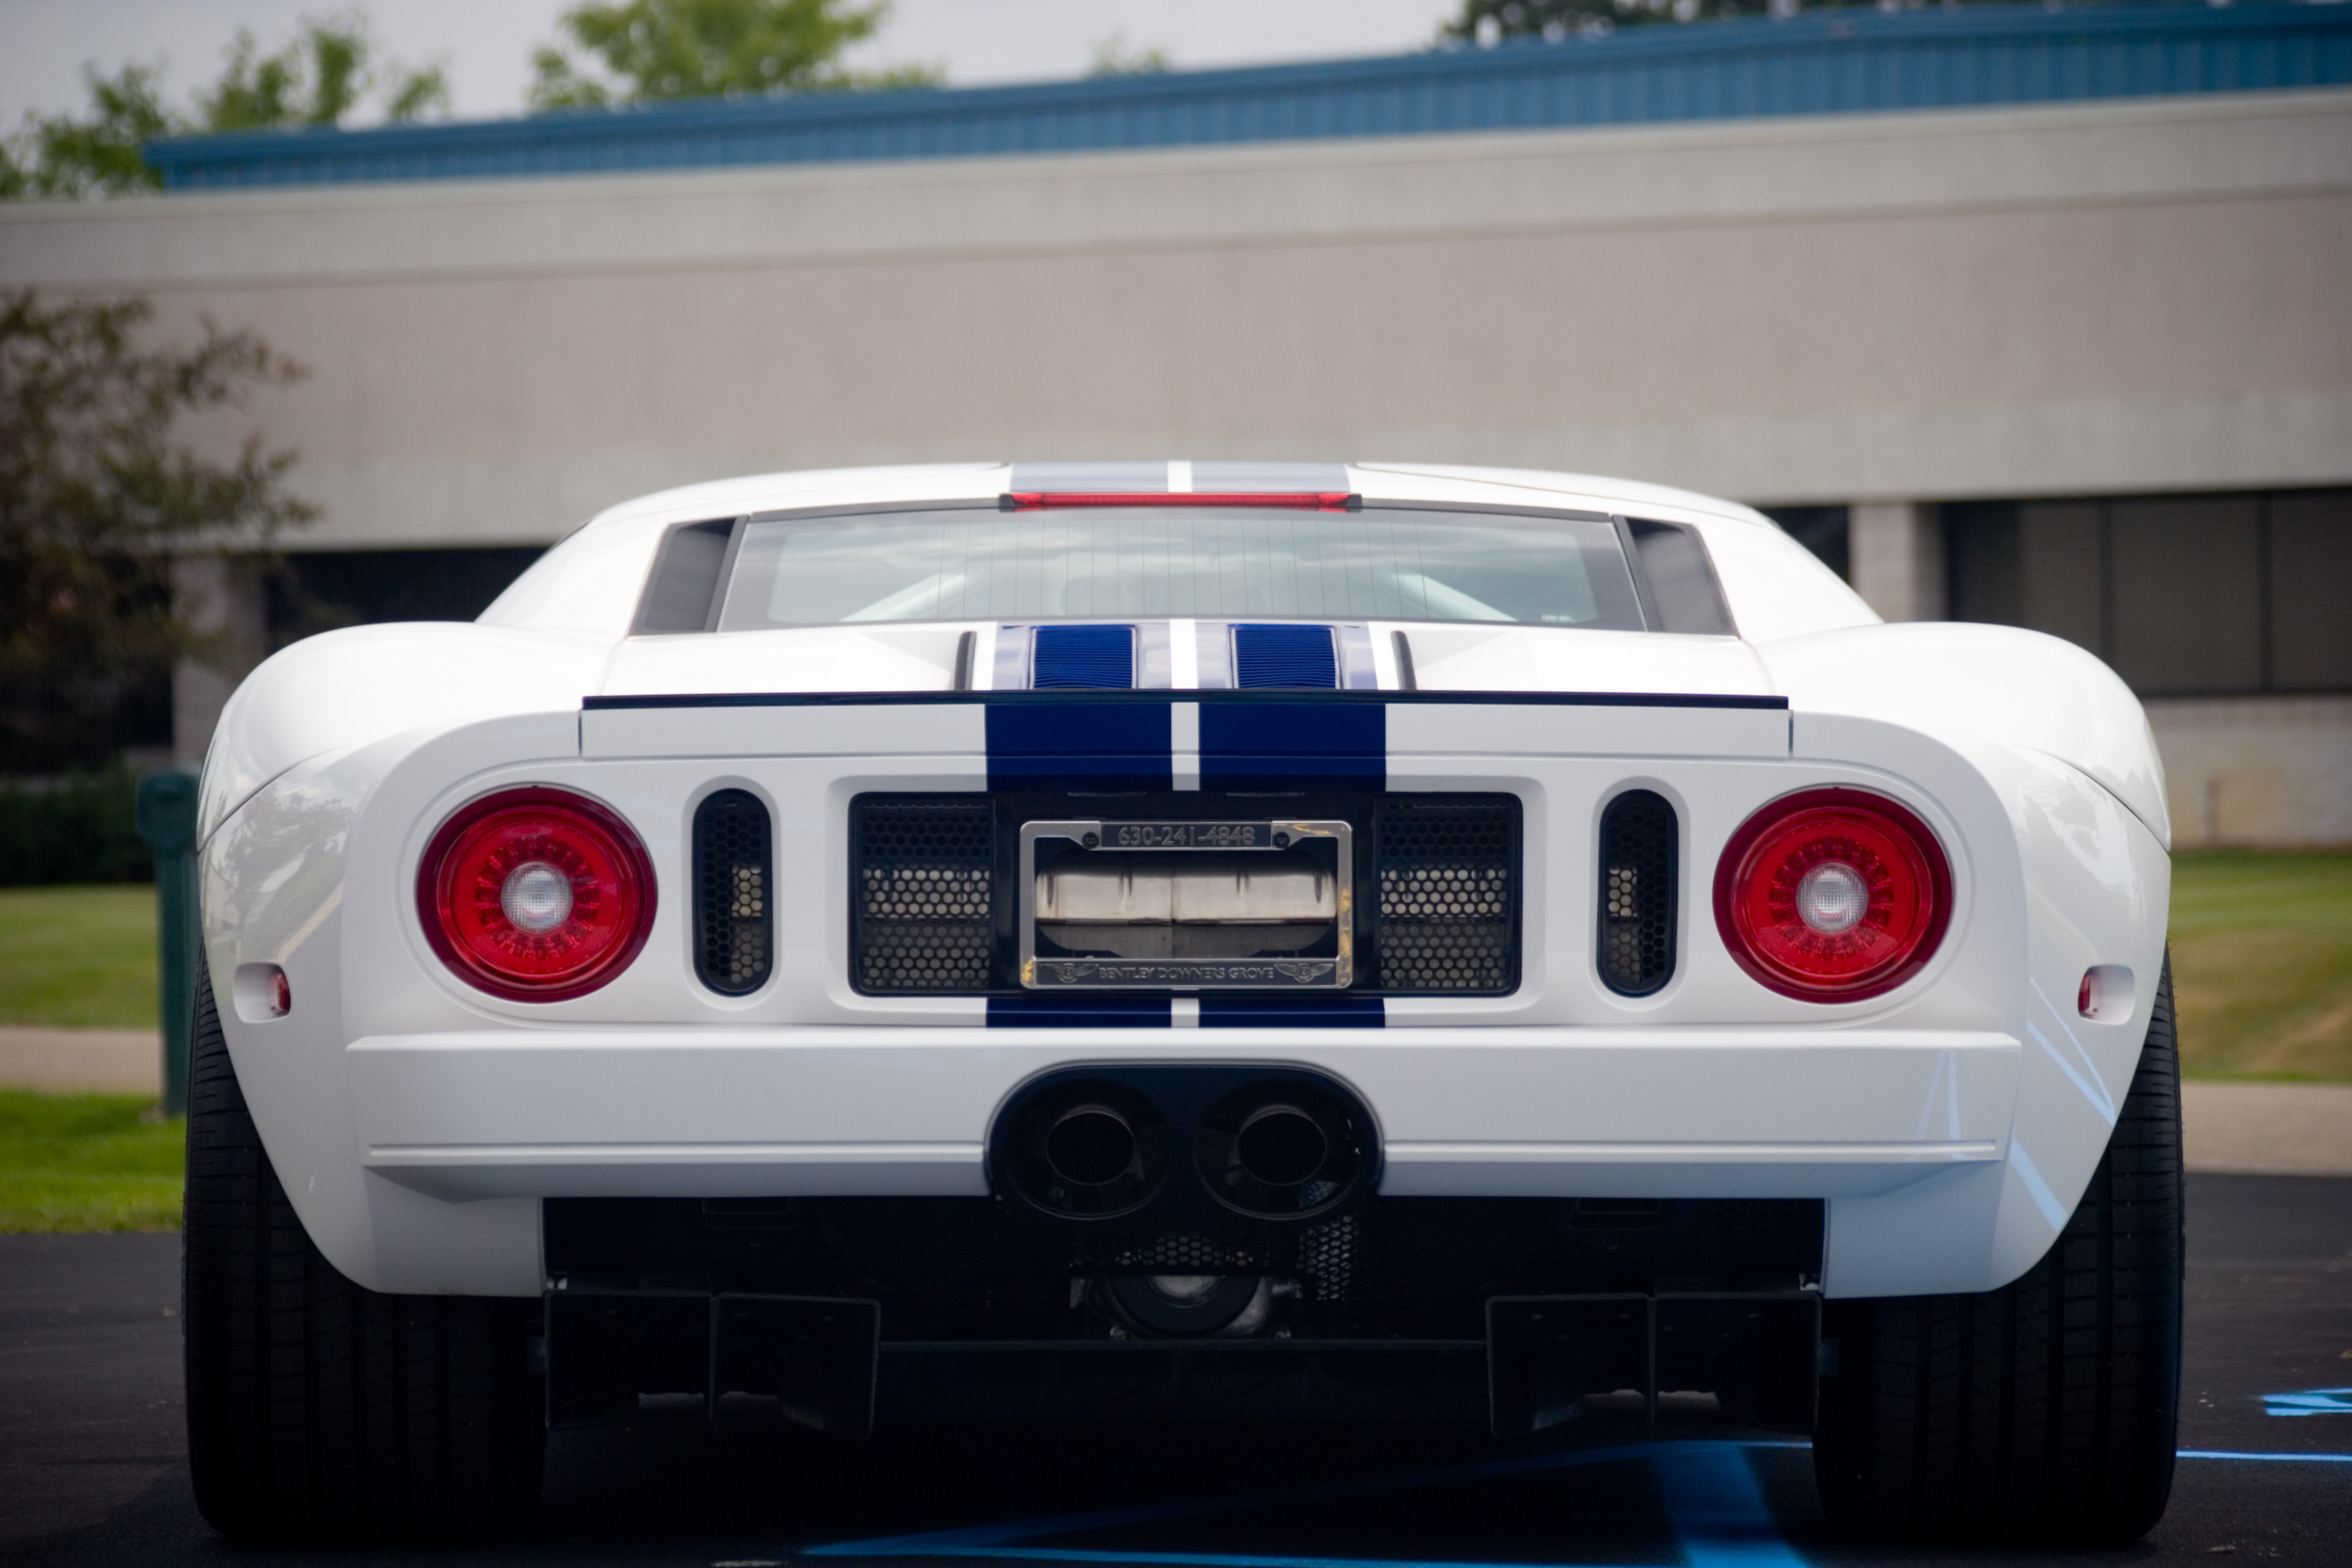 2005 Ford Gt Hd Wallpaper Background Image 3504x2336 Id 289409 Wallpaper Abyss